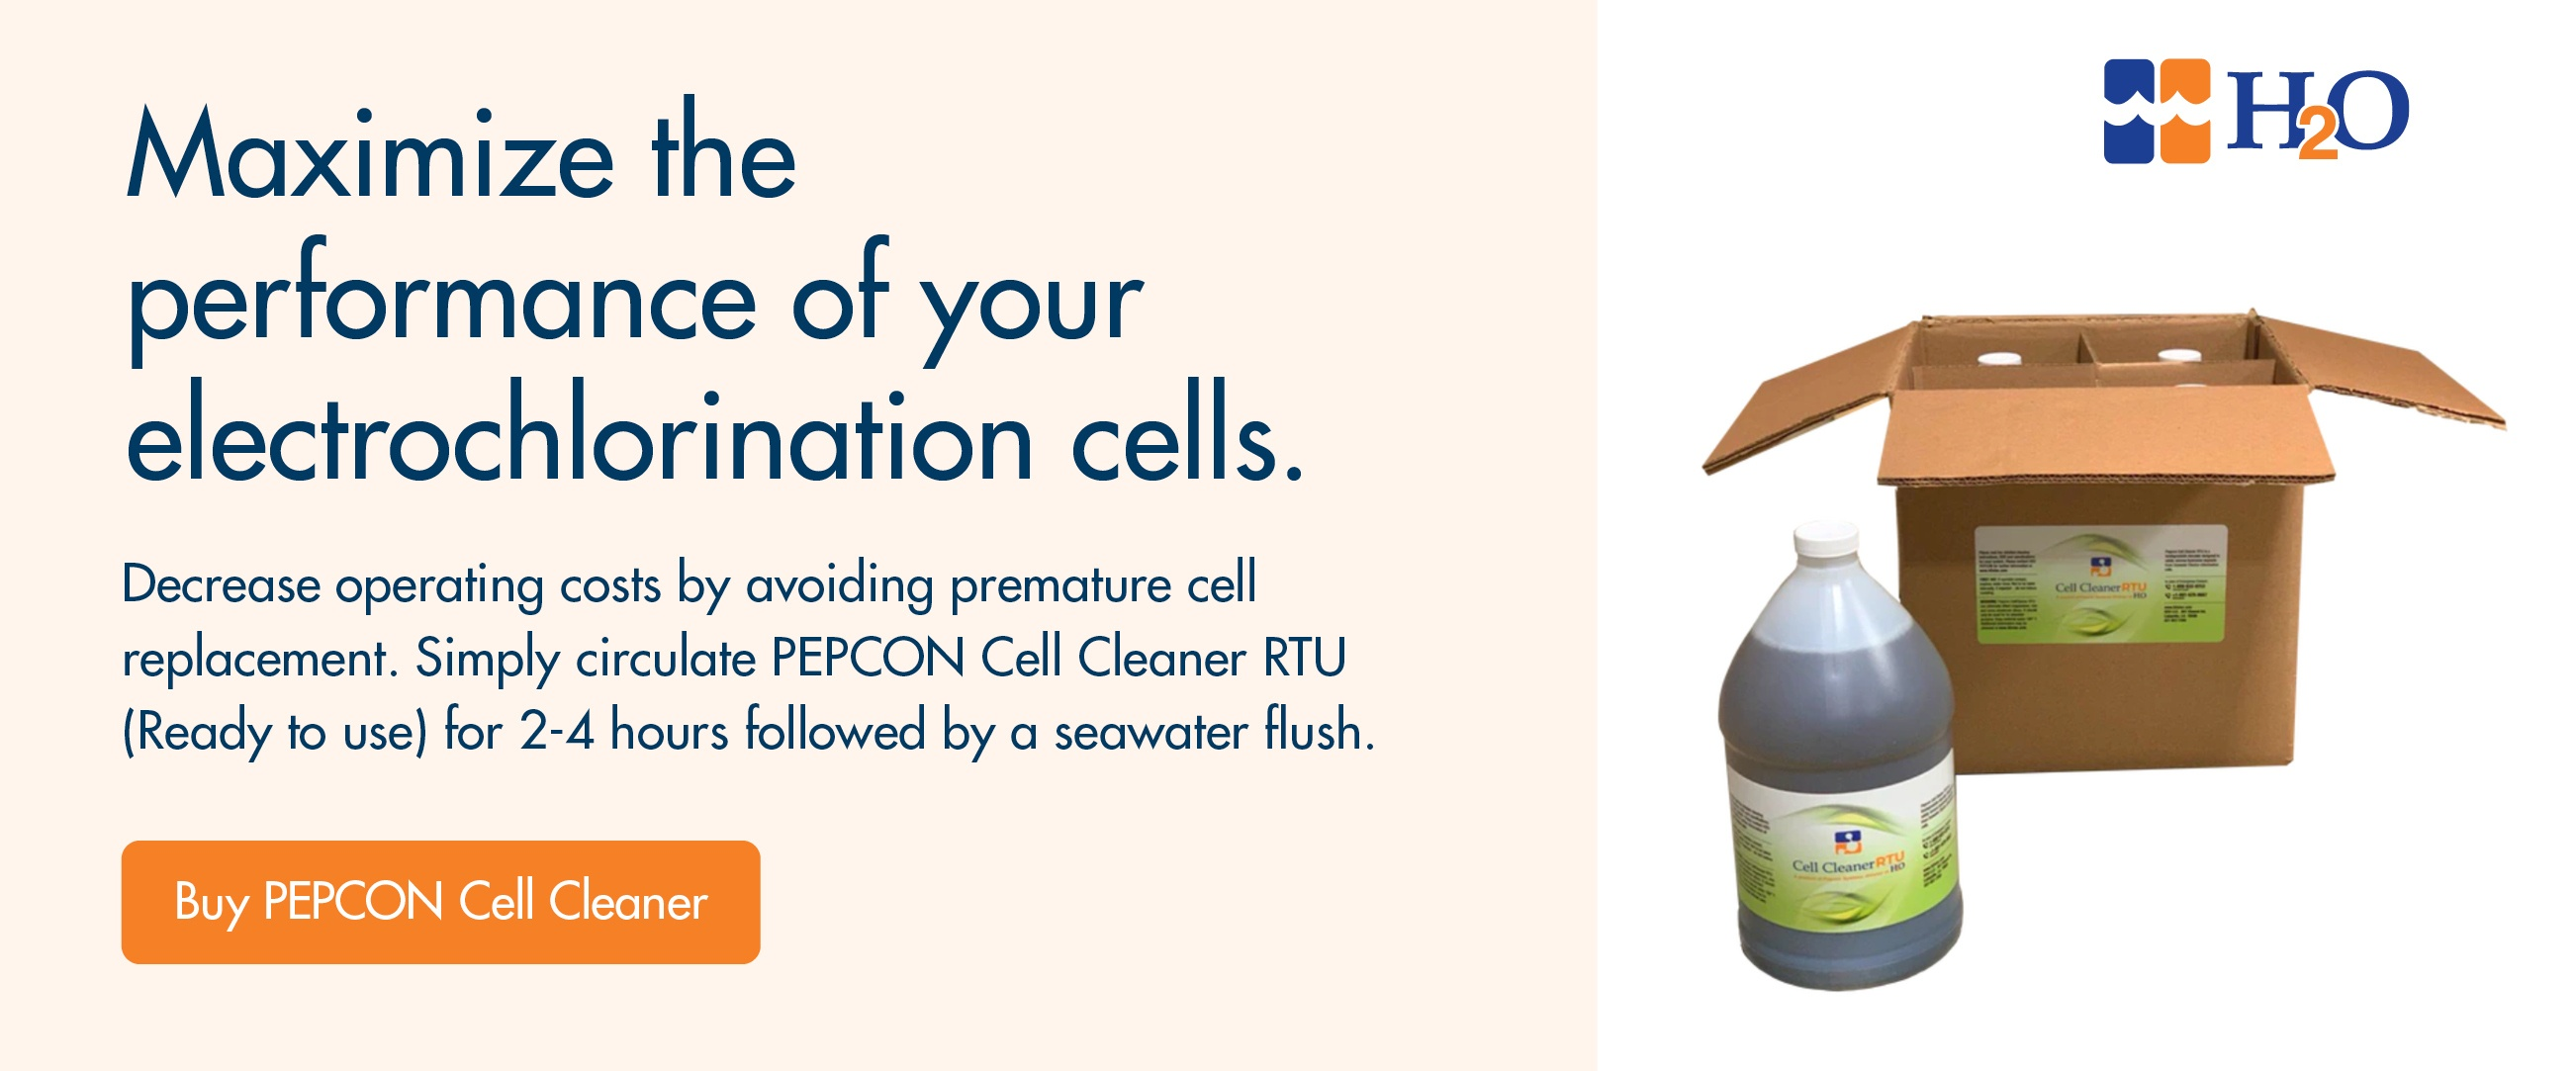 pepcon-cell-cleaner